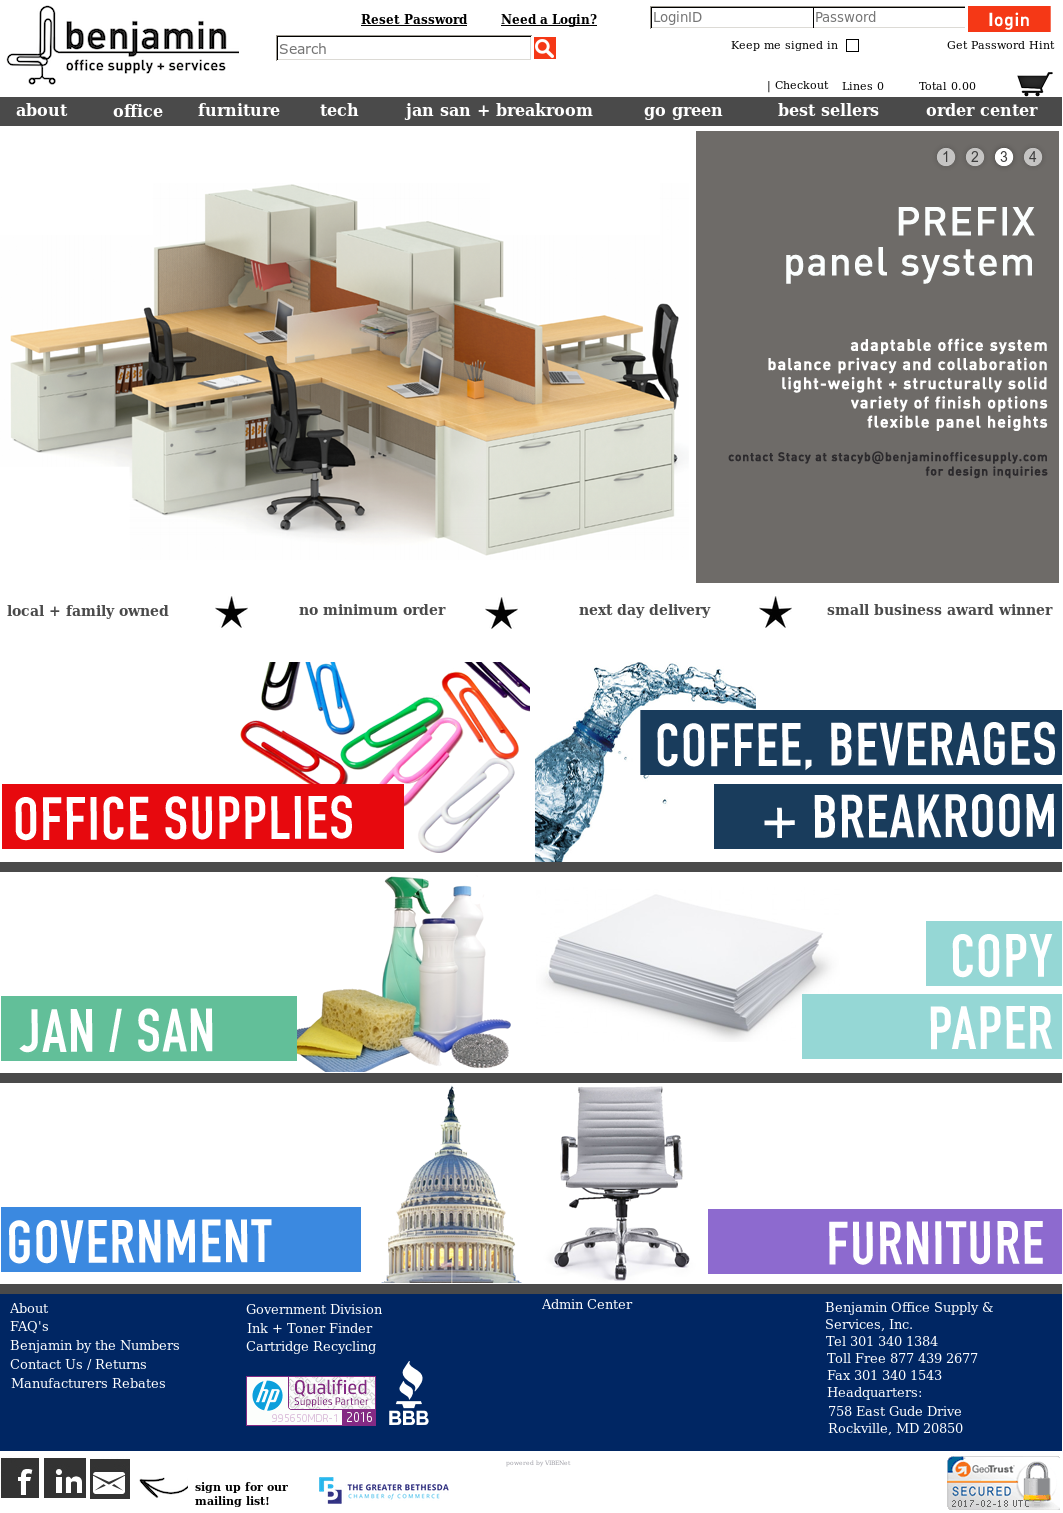 Superbe Benjamin Office Supply U0026 Services Competitors, Revenue And Employees    Owler Company Profile